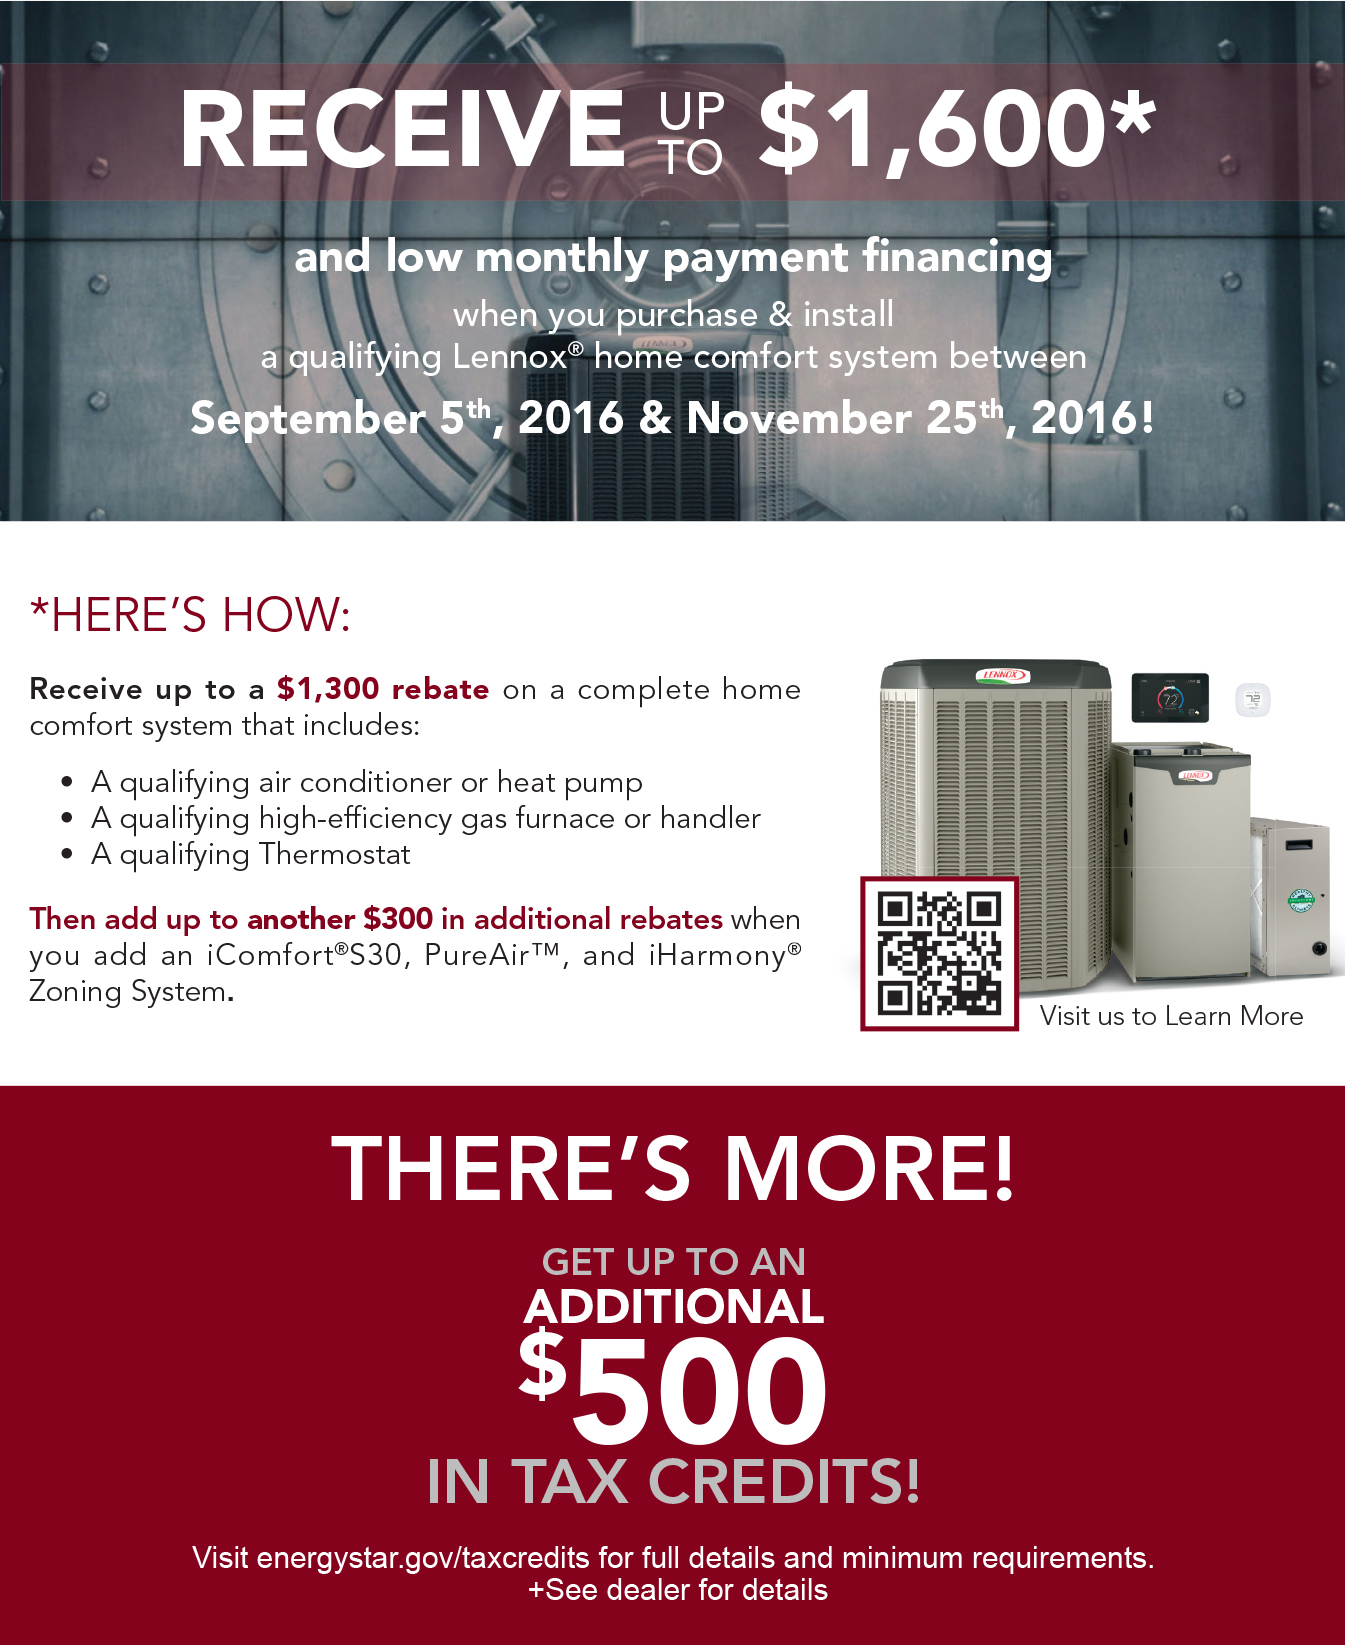 Receive up to $1,600* in savings when you purchase & install a qualifying American Standard home comfort system between September 5, 2016 and November 25, 2016!